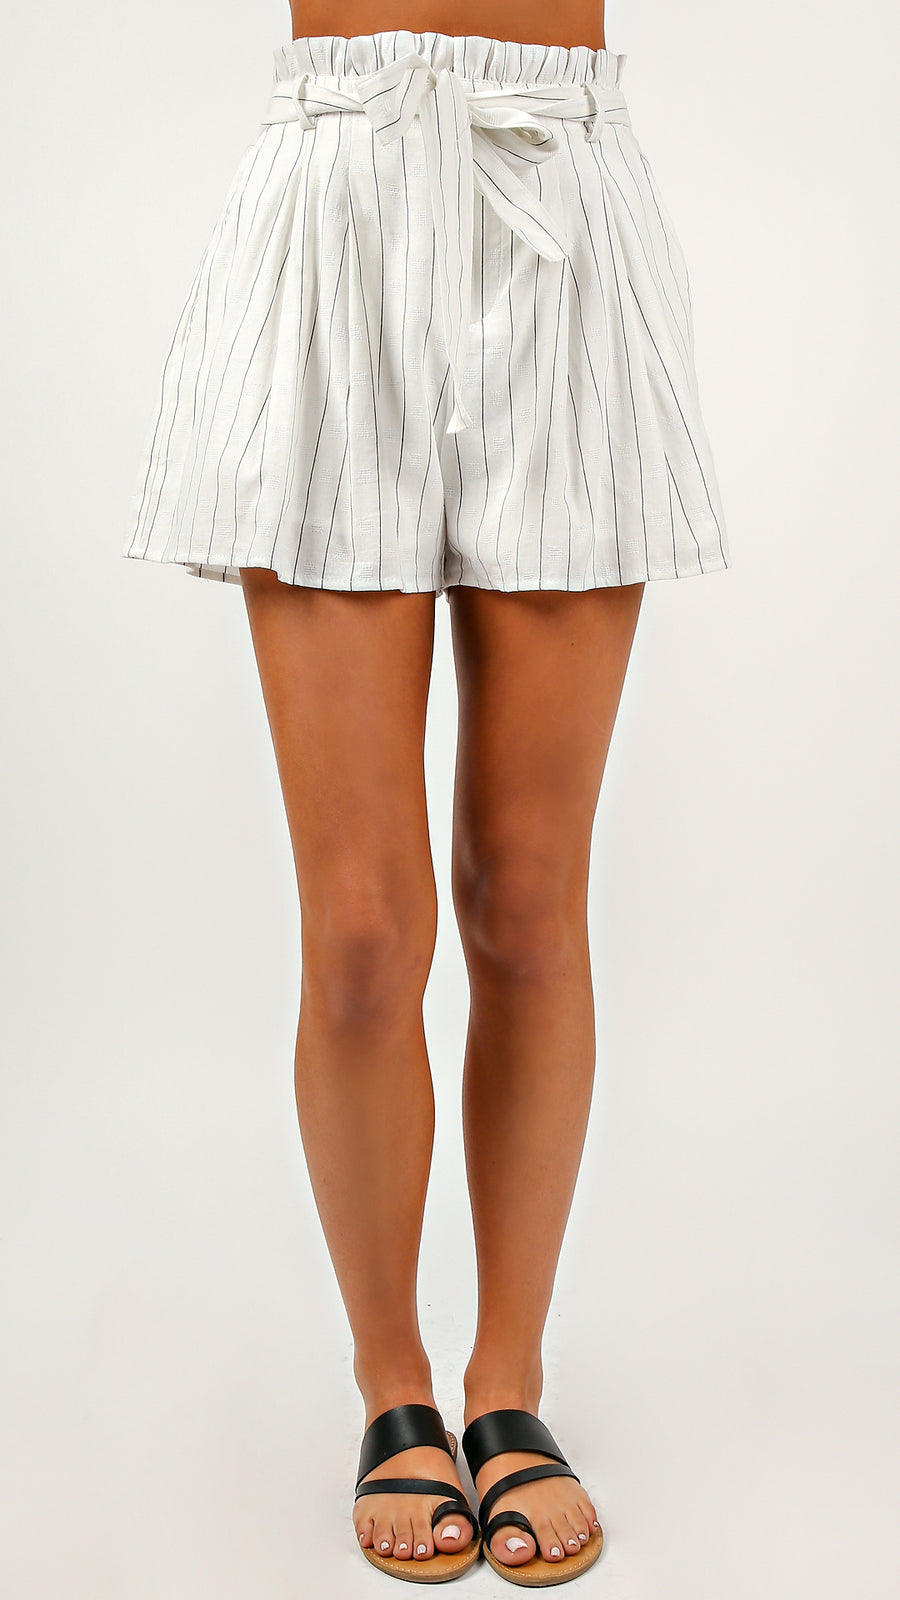 Clean Lines High Waisted Shorts - ANGL